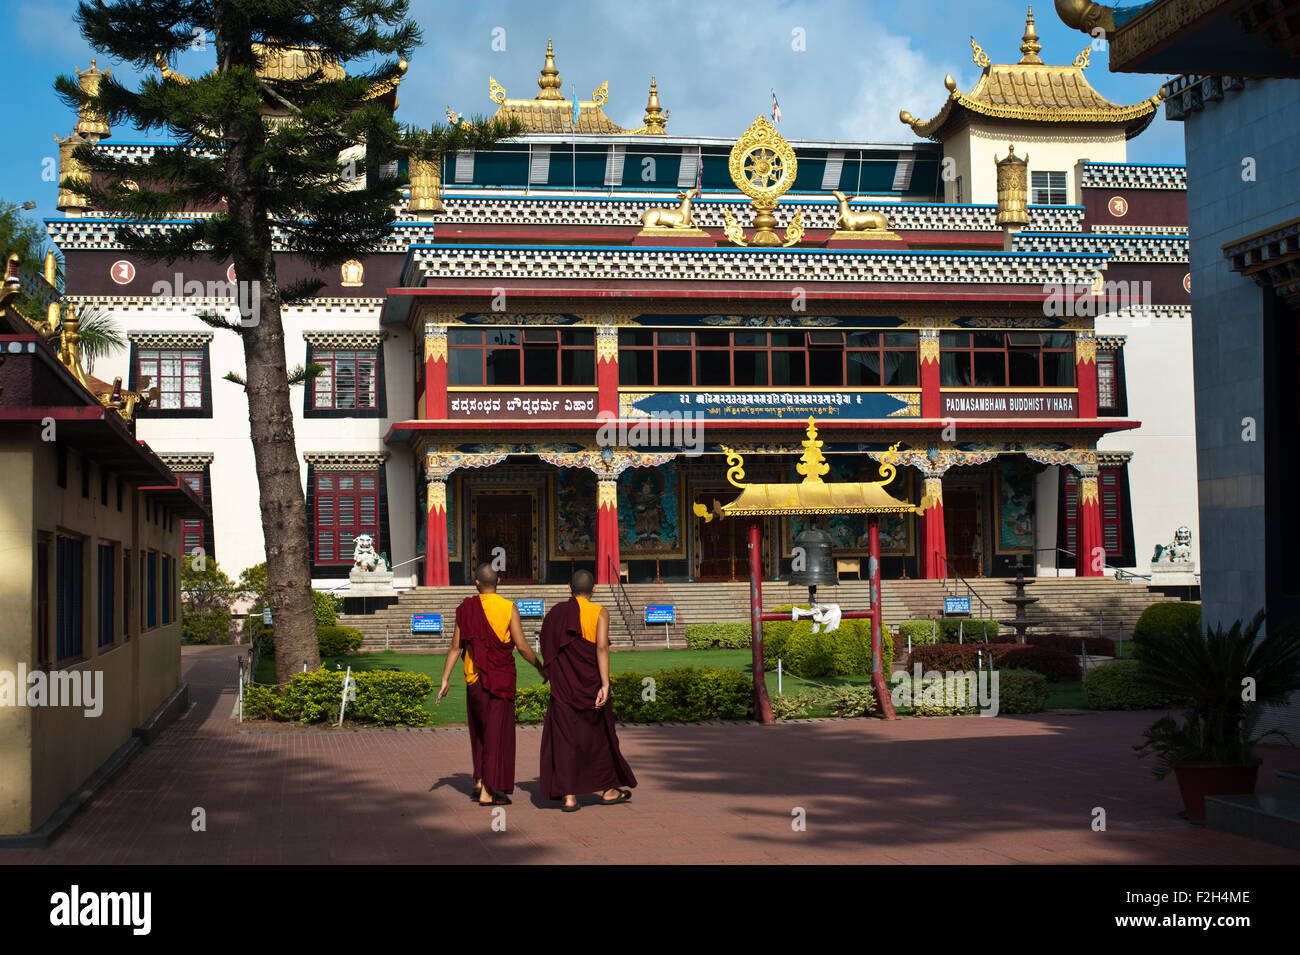 Tibetan monks are walking in front of the Golden temple ( India) - Stock Image